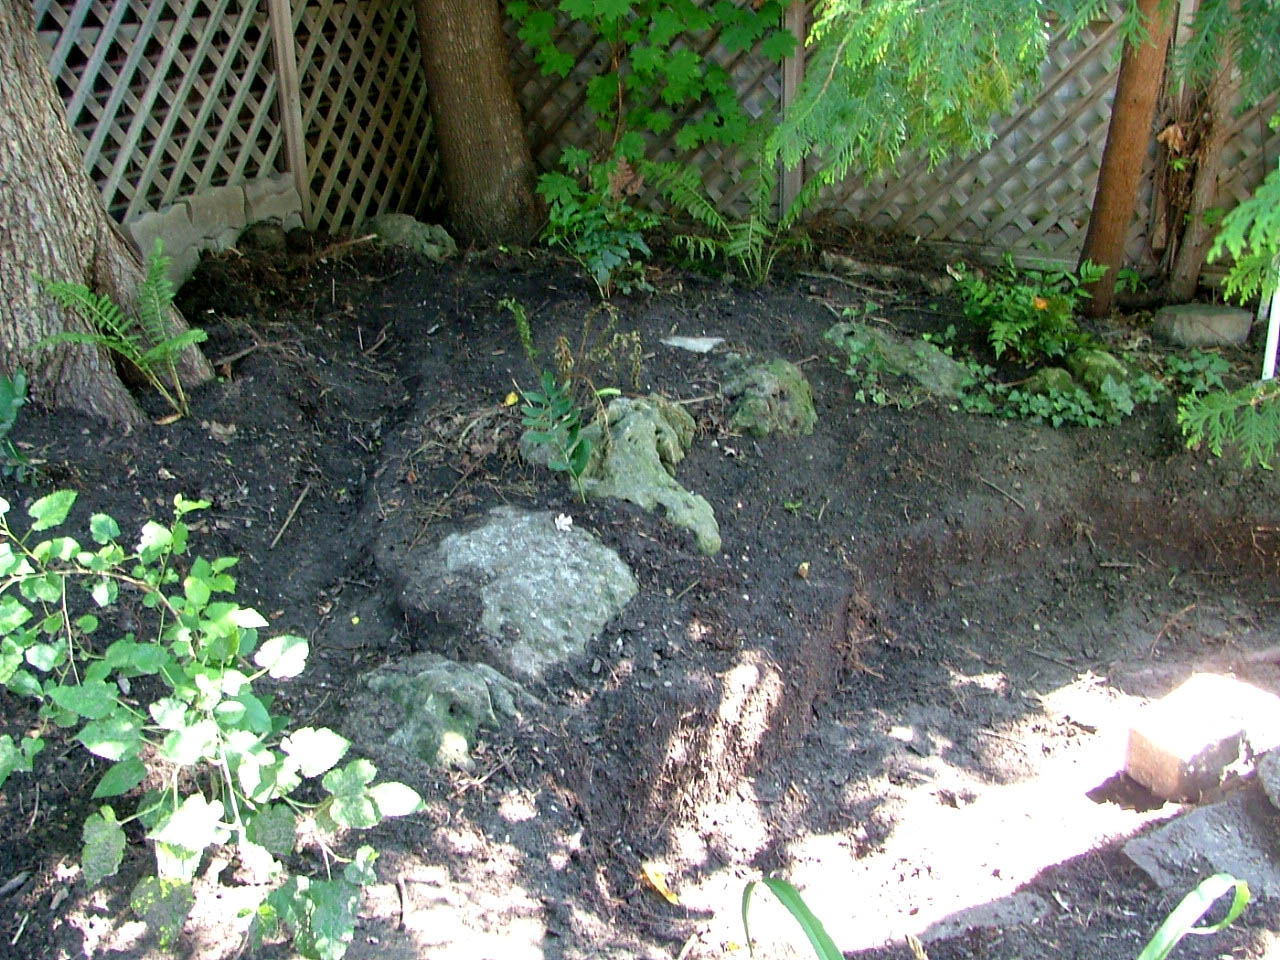 Building a backyard stream and pond: Mid-flight